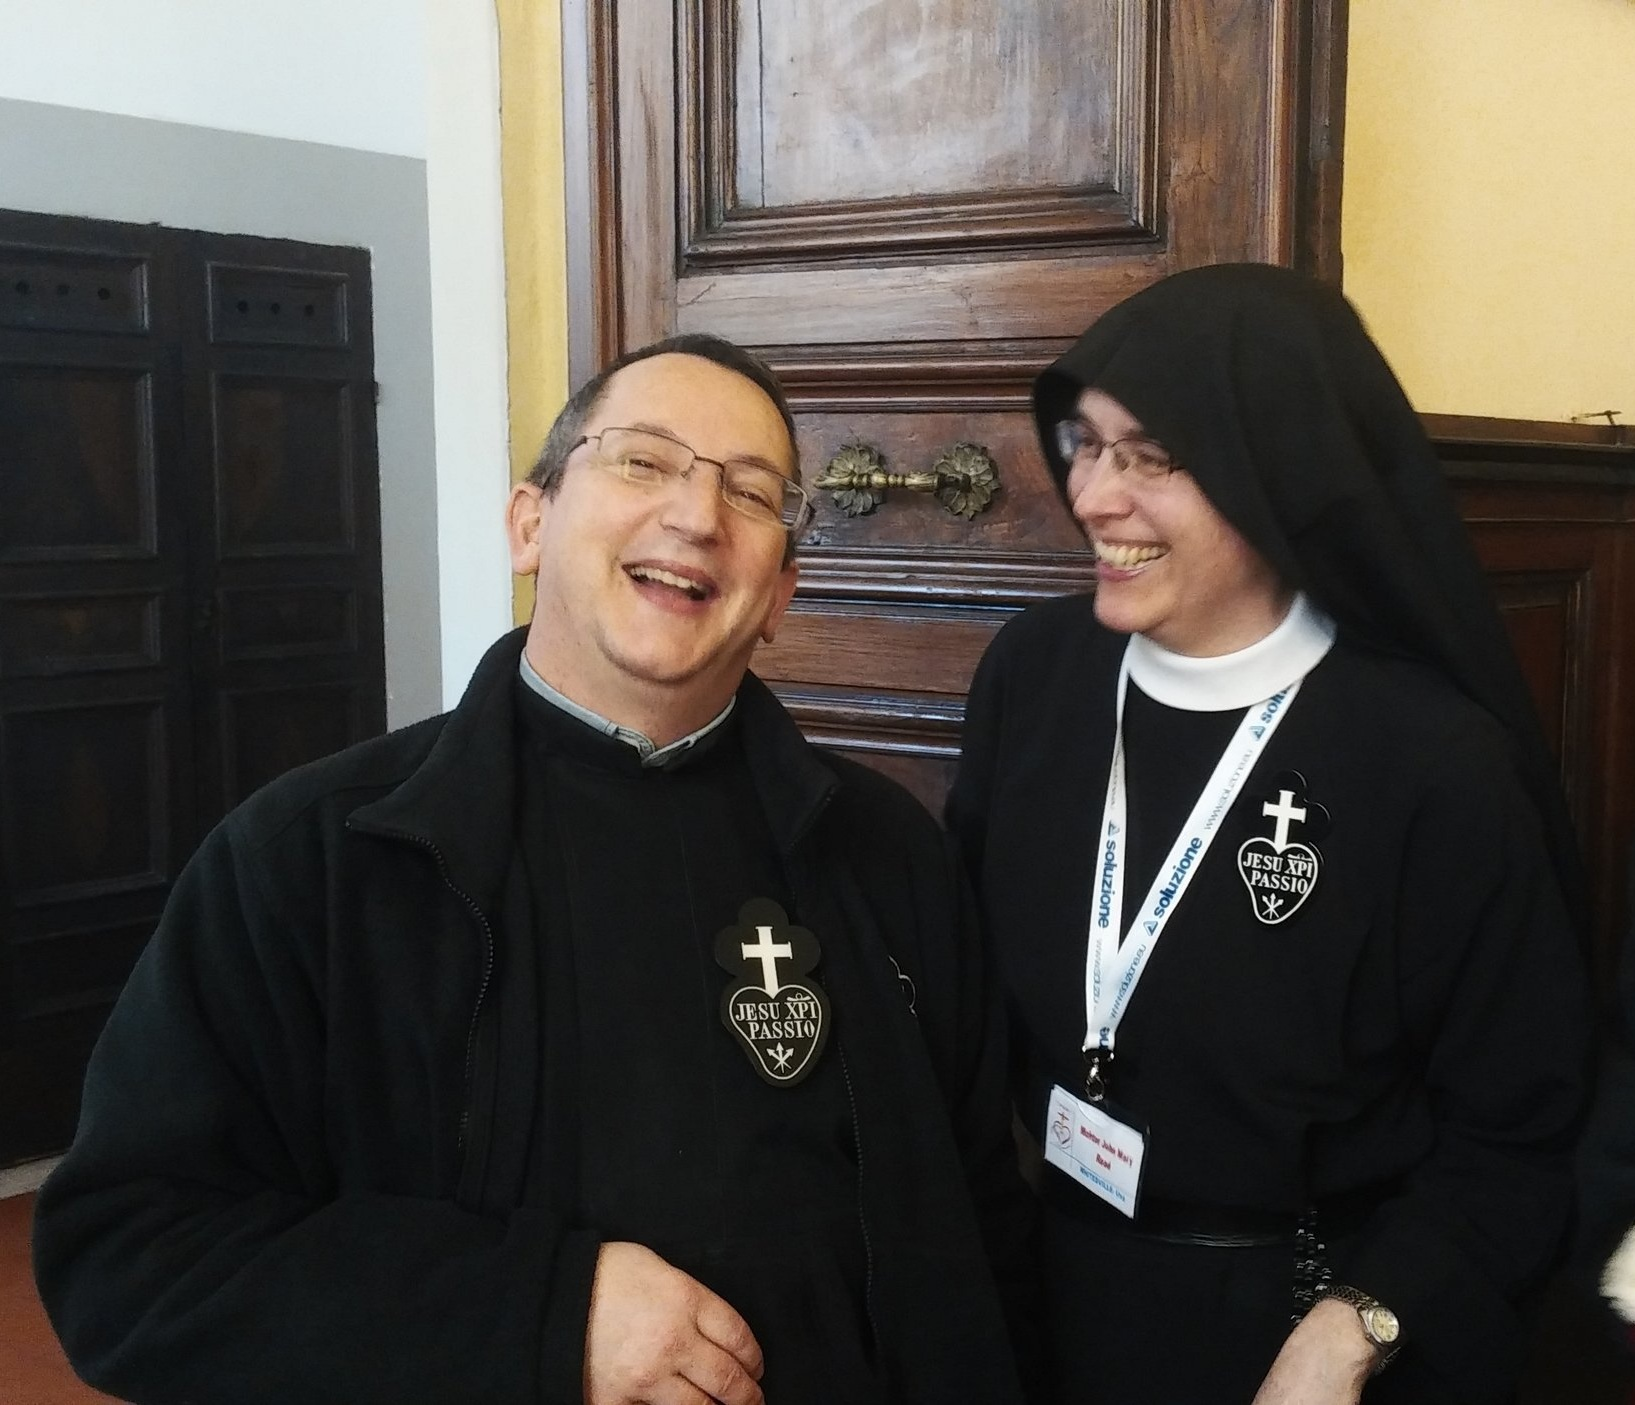 P. Alessandro and Mother John Mary at the post-election celebration.